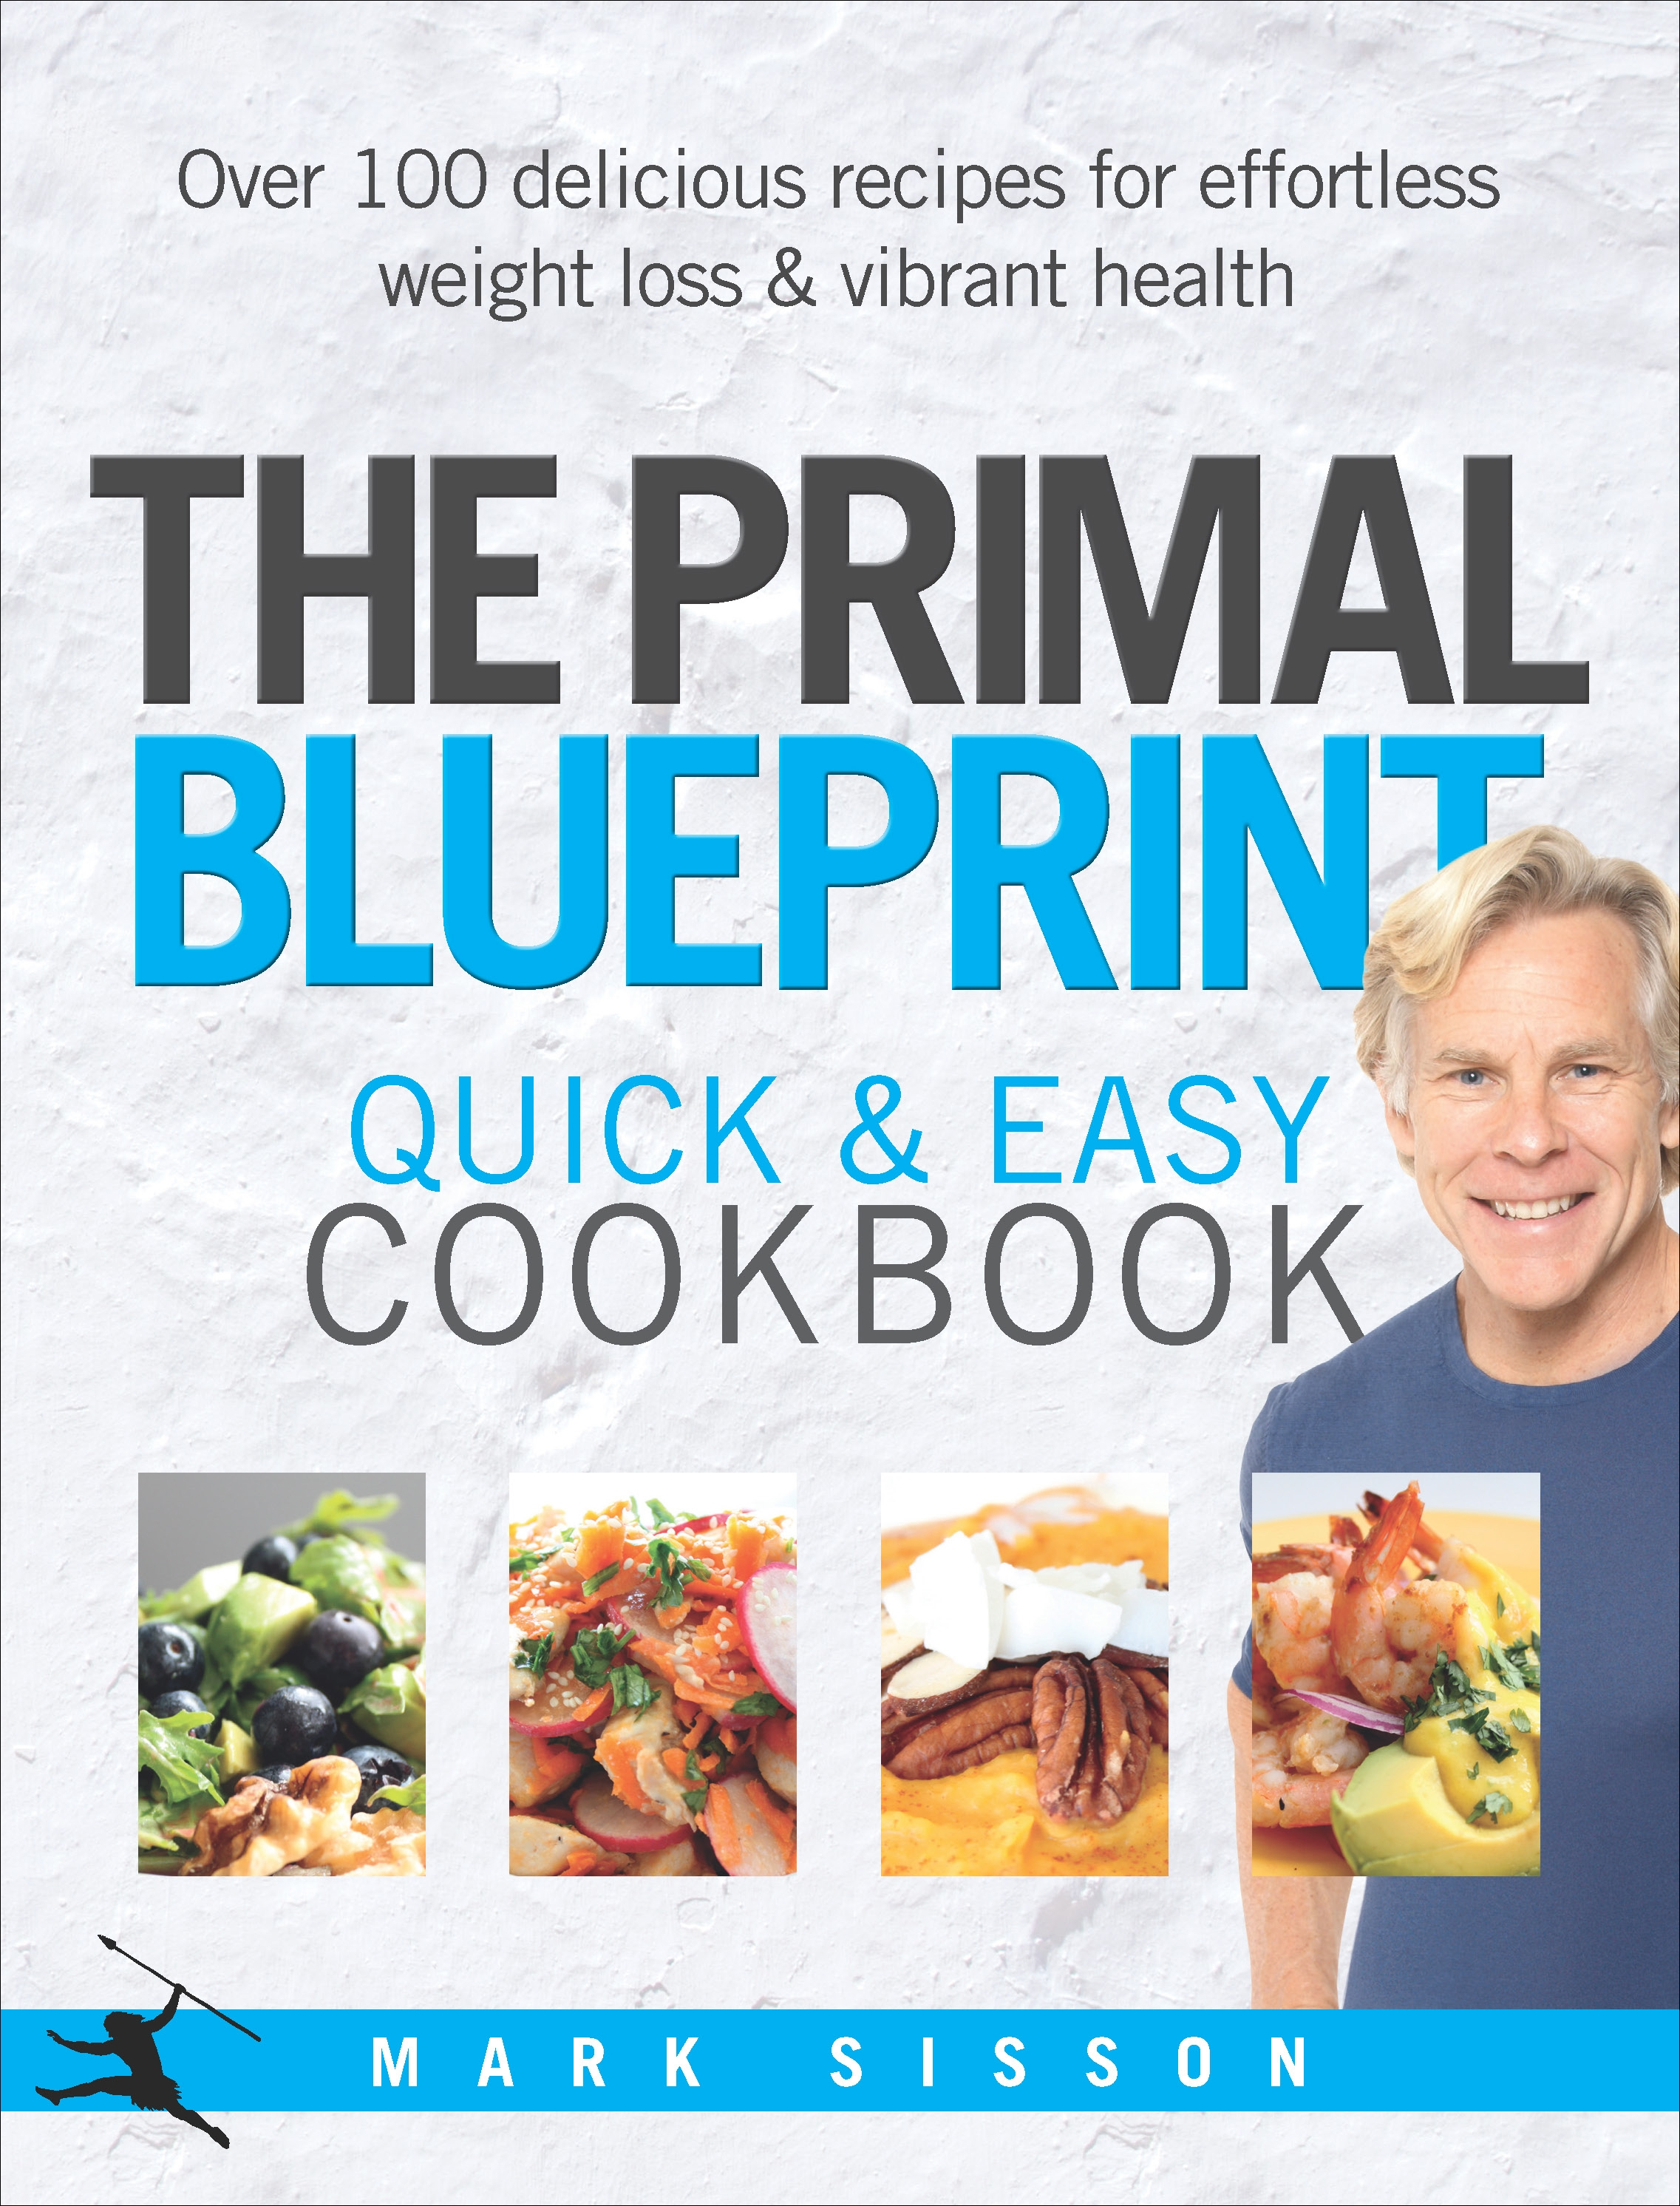 The primal blueprint quick and easy cookbook by mark sisson the primal blueprint quick and easy cookbook malvernweather Gallery